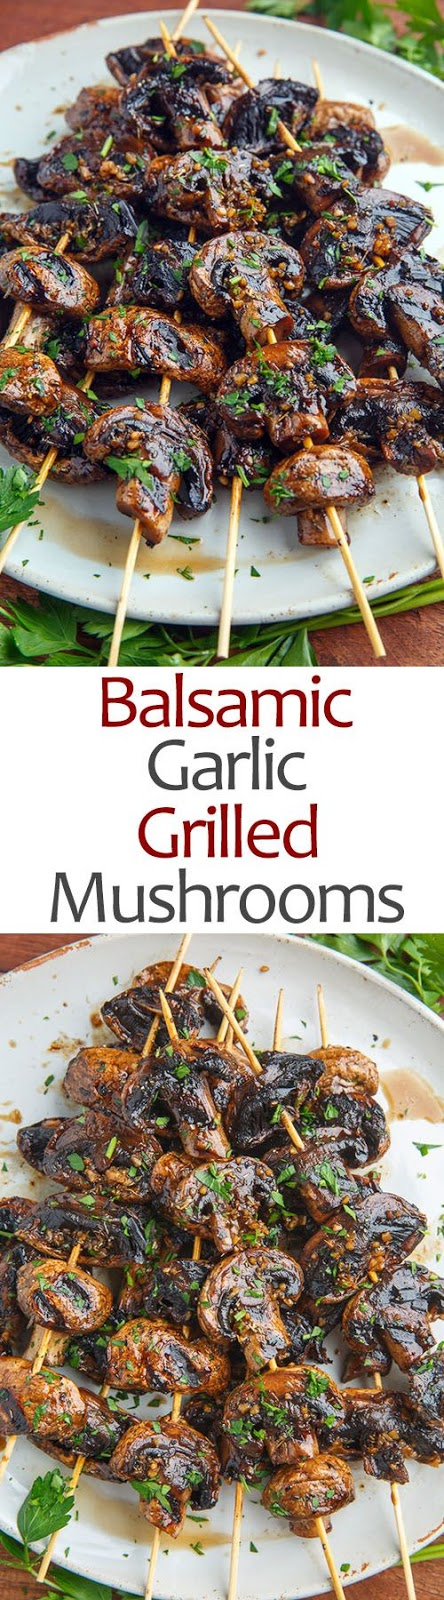 Balsamic Garlic Grilled Mushroom Skewers   #DESSERTS #HEALTHYFOOD #EASY_RECIPES #DINNER #LAUCH #DELICIOUS #EASY #HOLIDAYS #RECIPE #SPECIAL_DIET #WORLD_CUISINE #CAKE #GRILL #APPETIZERS #HEALTHY_RECIPES #DRINKS #COOKING_METHOD #ITALIAN_RECIPES #MEAT #VEGAN_RECIPES #COOKIES #PASTA #FRUIT #SALAD #SOUP_APPETIZERS #NON_ALCOHOLIC_DRINKS #MEAL_PLANNING #VEGETABLES #SOUP #PASTRY #CHOCOLATE #DAIRY #ALCOHOLIC_DRINKS #BULGUR_SALAD #BAKING #SNACKS #BEEF_RECIPES #MEAT_APPETIZERS #MEXICAN_RECIPES #BREAD #ASIAN_RECIPES #SEAFOOD_APPETIZERS #MUFFINS #BREAKFAST_AND_BRUNCH #CONDIMENTS #CUPCAKES #CHEESE #CHICKEN_RECIPES #PIE #COFFEE #NO_BAKE_DESSERTS #HEALTHY_SNACKS #SEAFOOD #GRAIN #LUNCHES_DINNERS #MEXICAN #QUICK_BREAD #LIQUOR